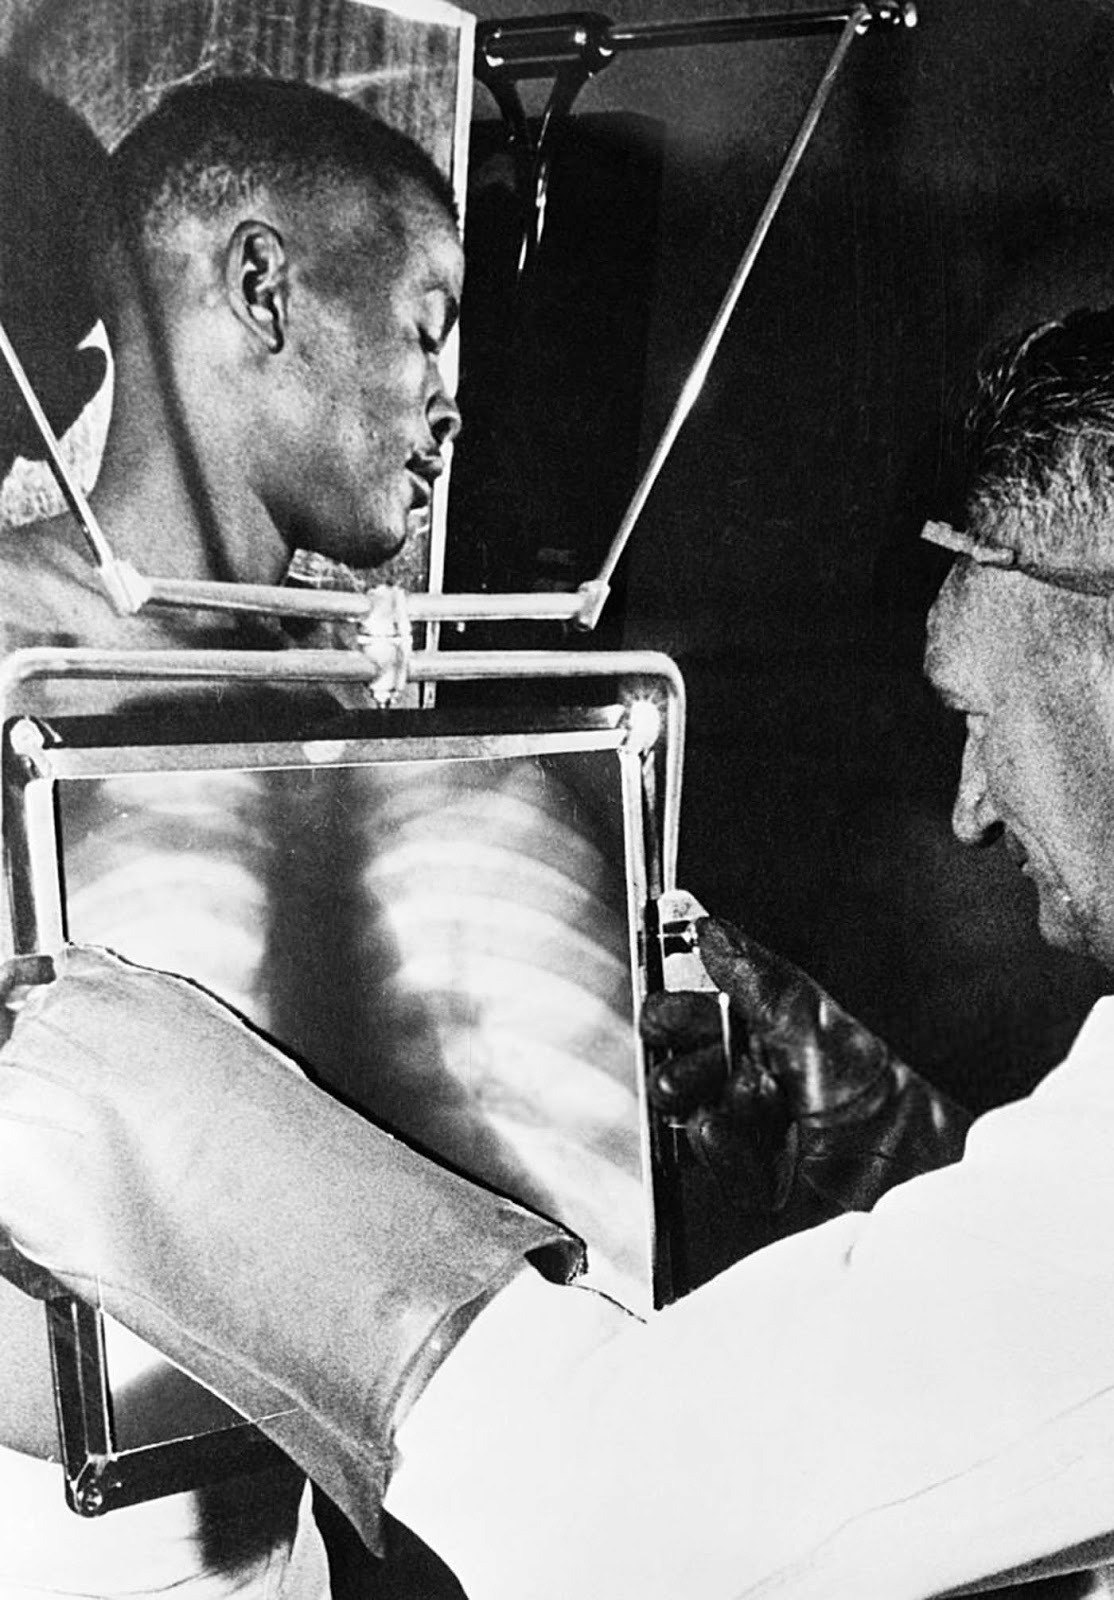 De Beer mine workers are X-rayed at the end of every shift before leaving the diamond mines, Kimberley, South Africa, October, 1954.